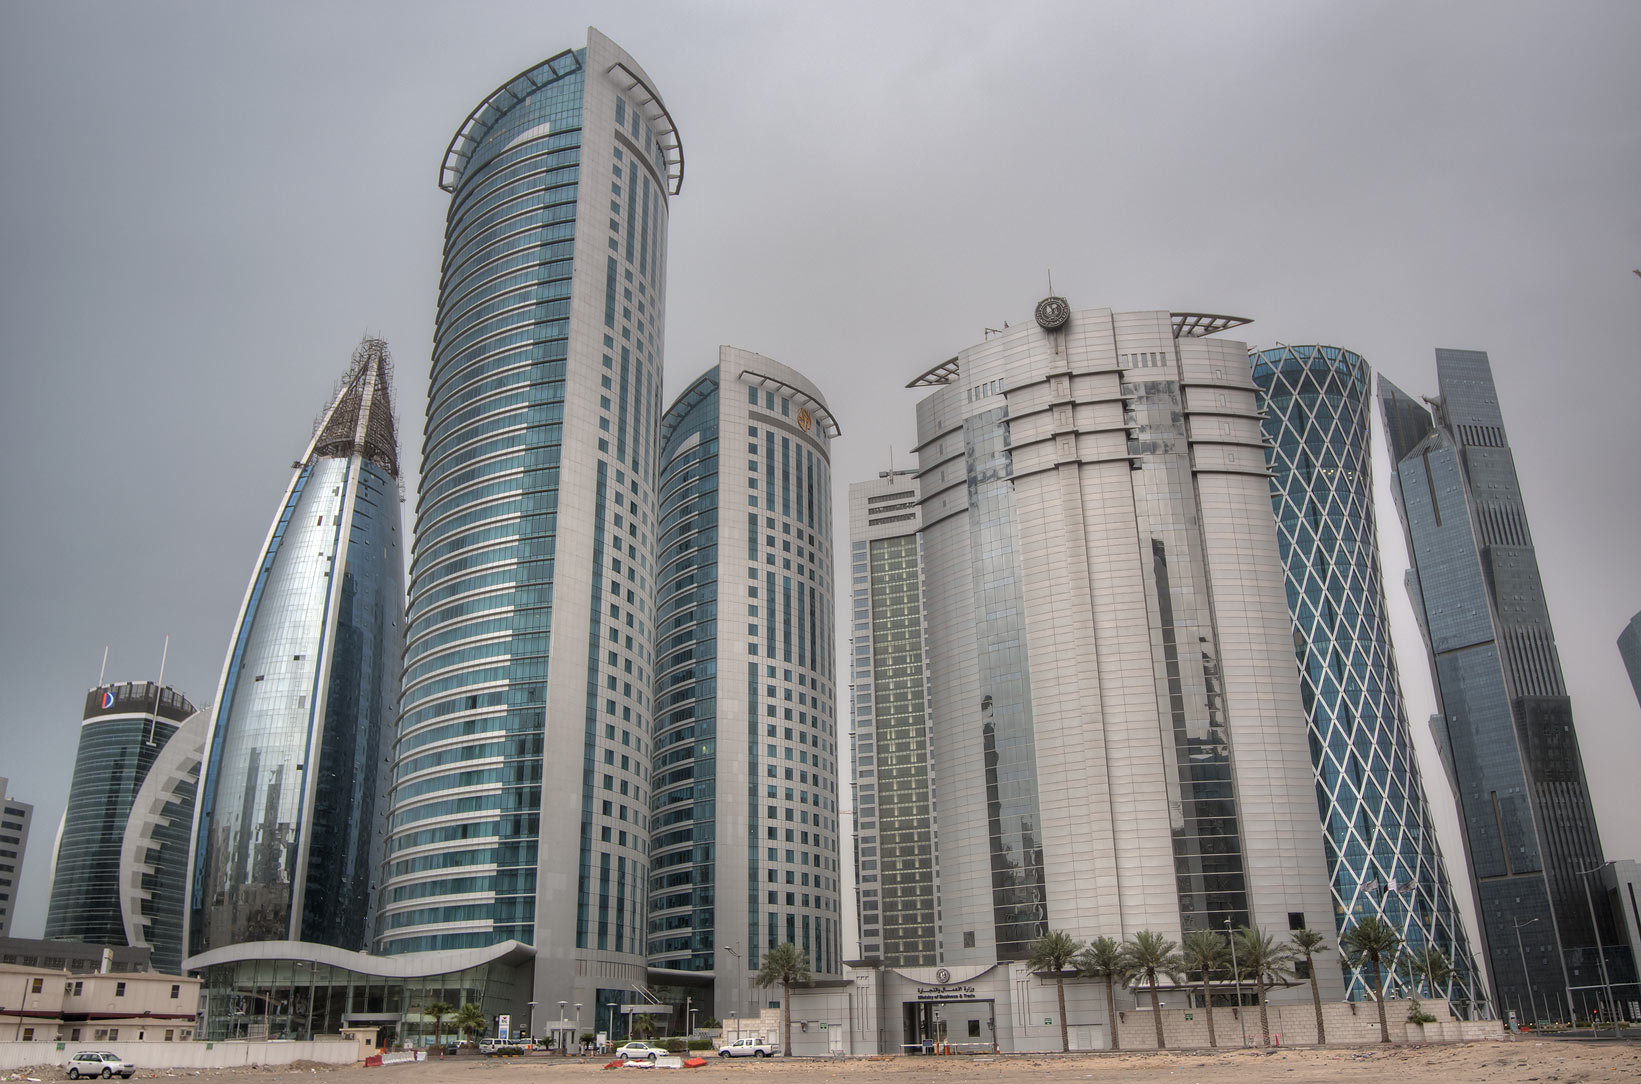 Office buildings from a backyard of City Center Mall at rain. Doha, Qatar